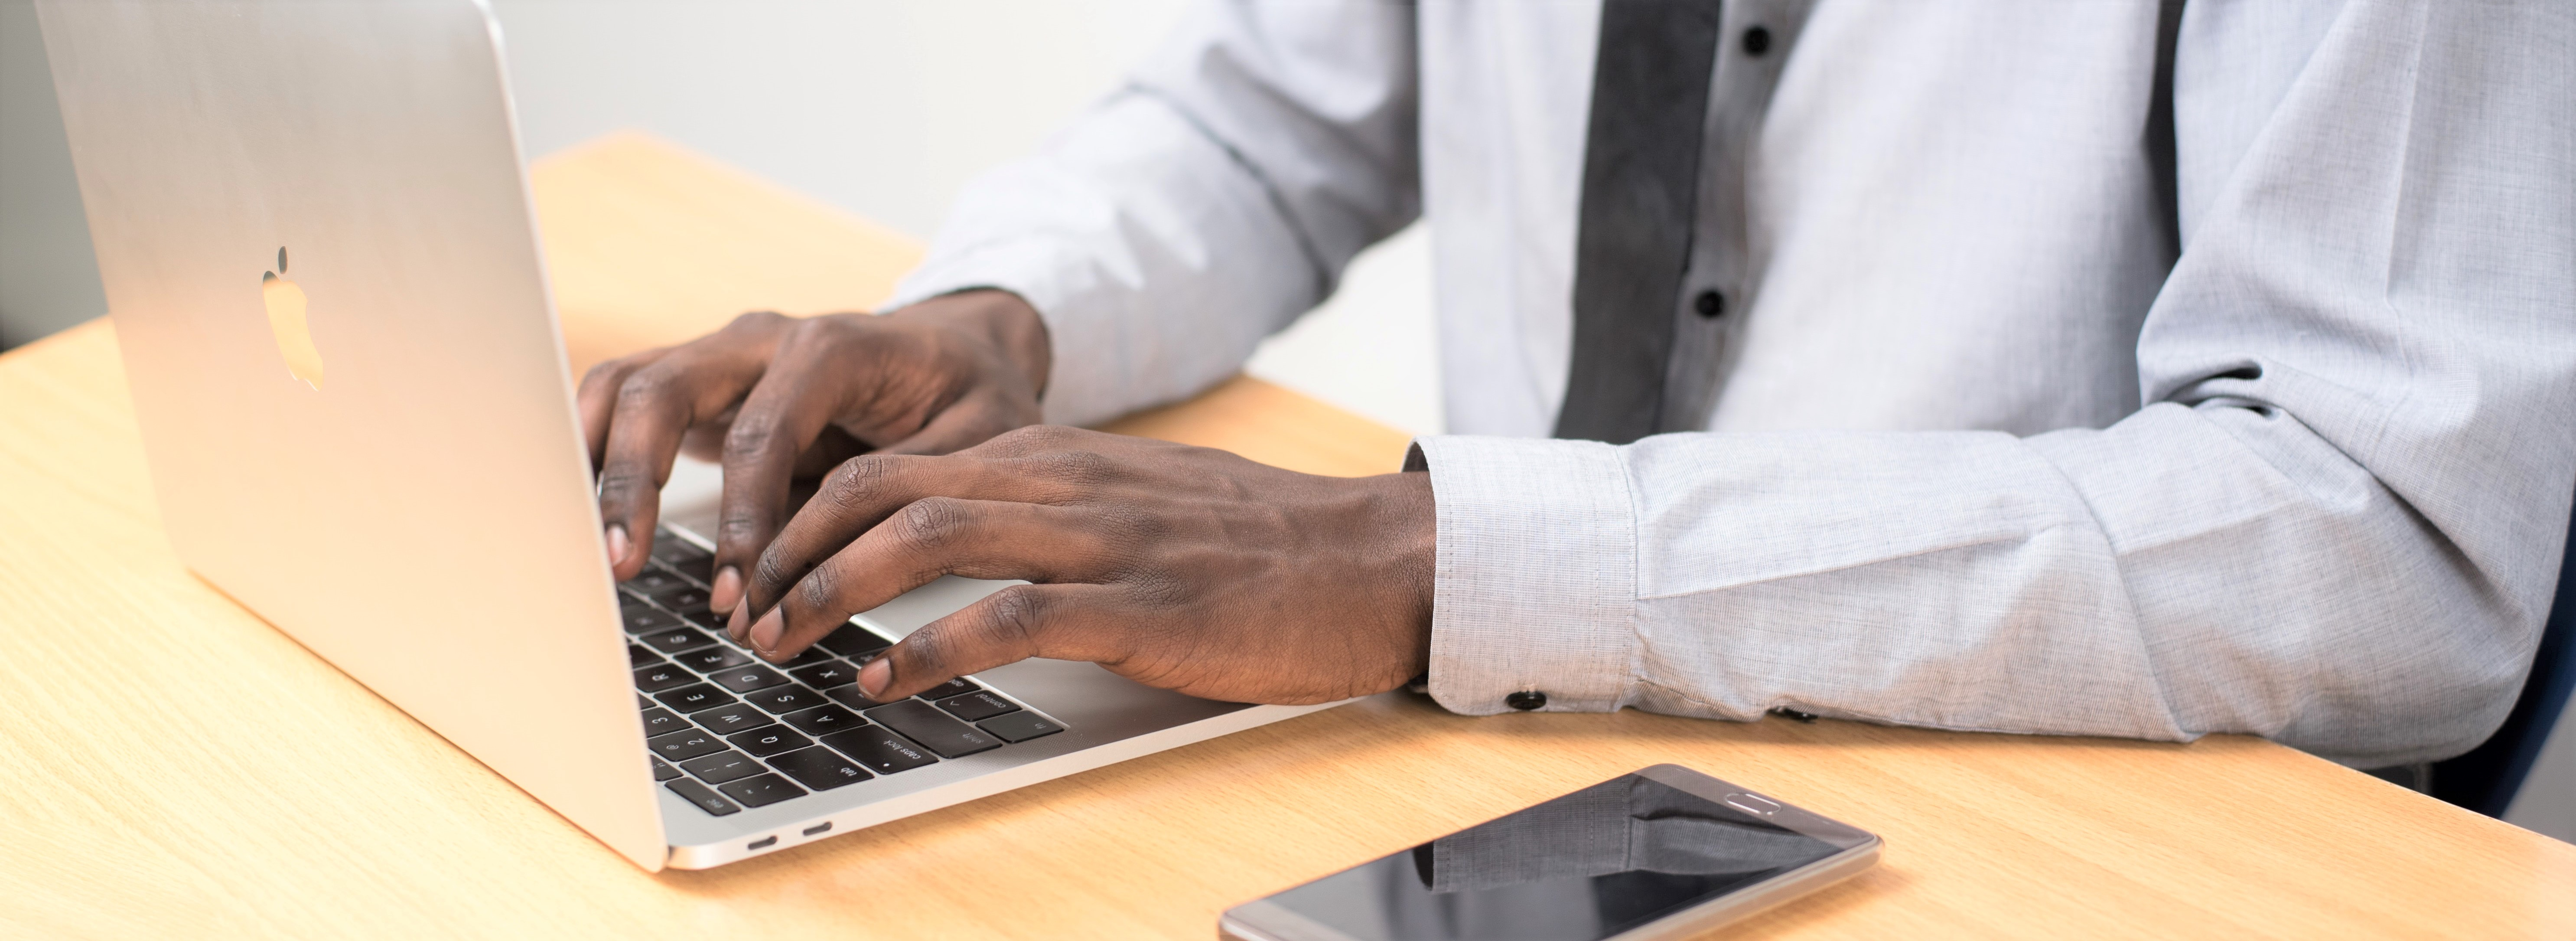 Person types on laptop wearing a button down and tie